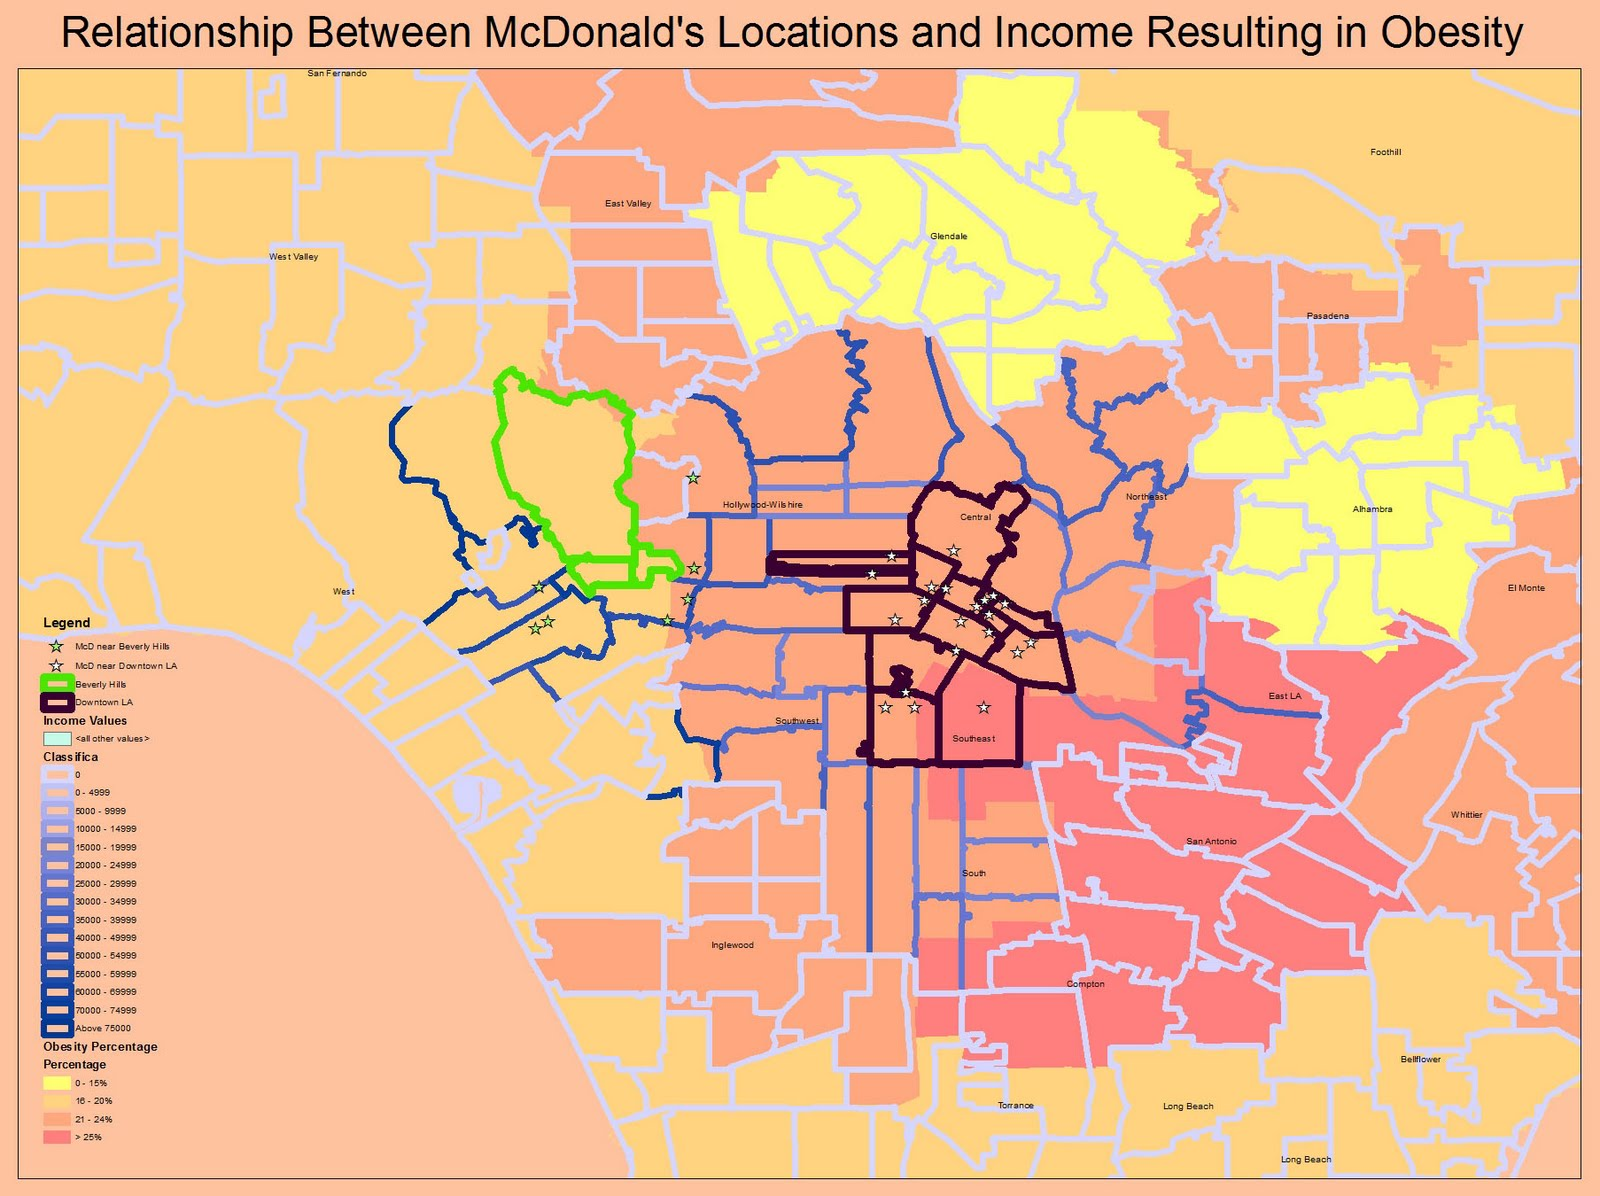 for this map i have combined all the maps to create a comparison of obesity median household income and the mcdonalds locations